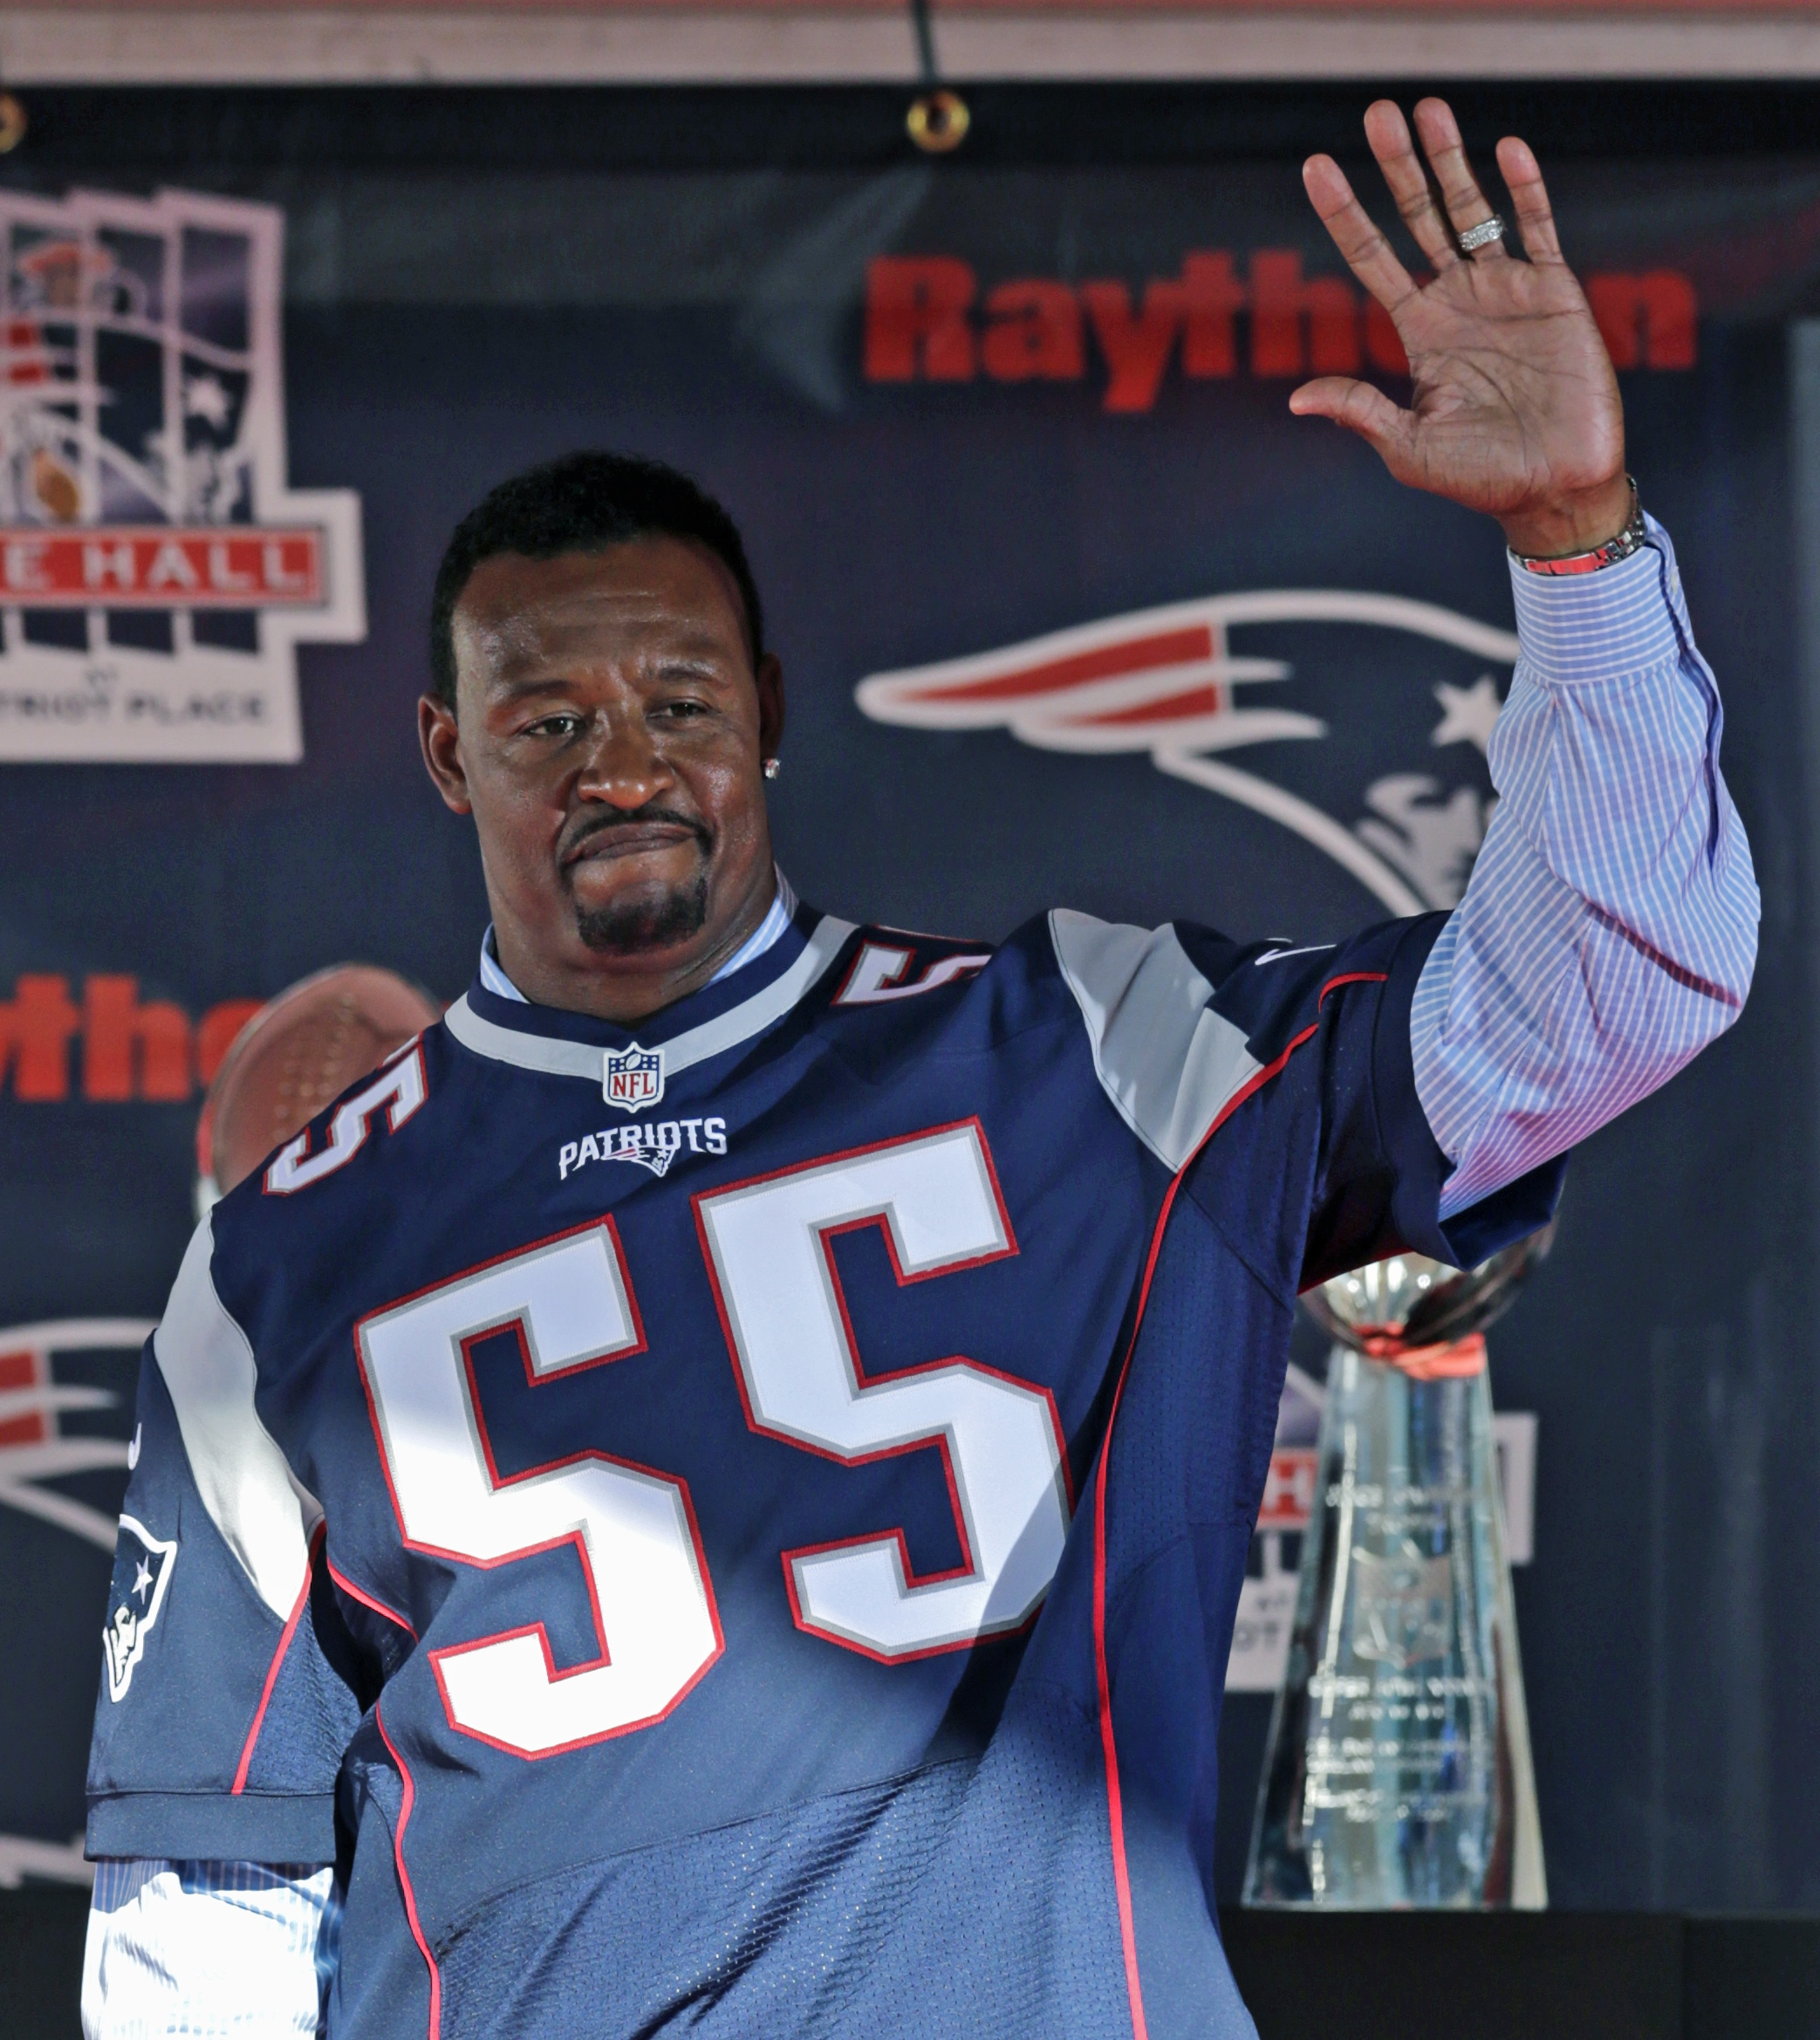 Former New England Patriots linebacker Willie McGinest acknowledges fans as he is inducted into the Patriot's Hall of Fame prior to an NFL football training camp in Foxborough, Mass., Wednesday, Aug. 5, 2015. (AP Photo/Charles Krupa)